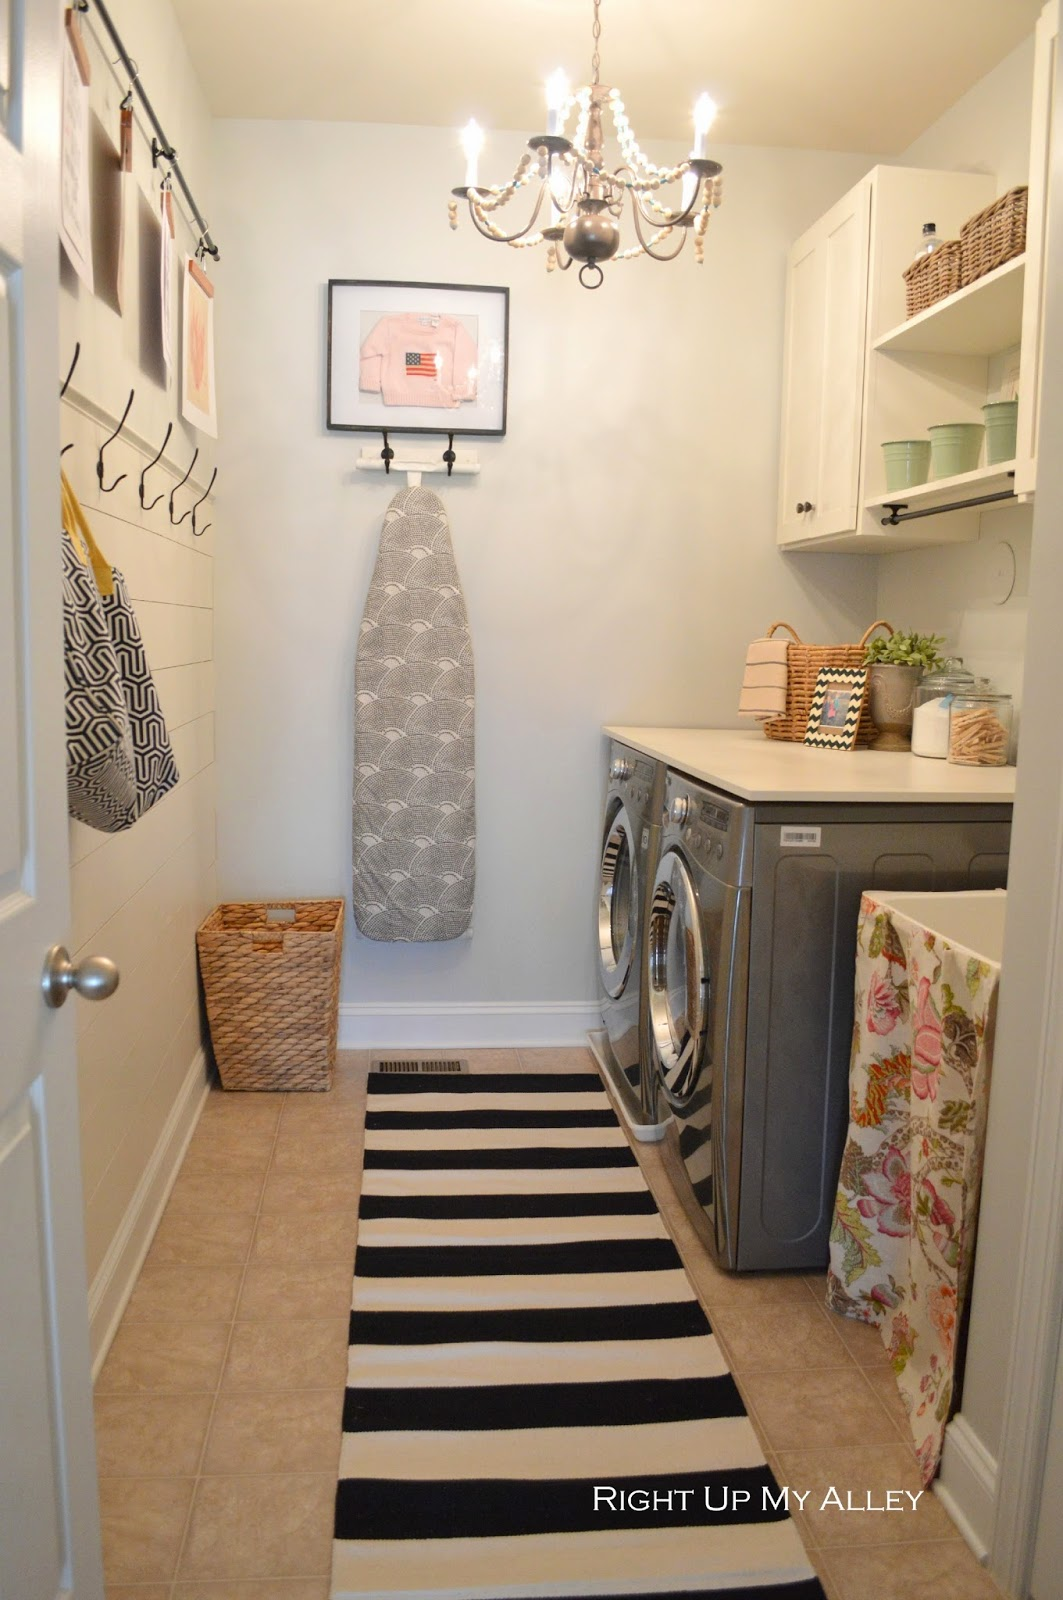 Laundry Room Ideas. Browse Lowe's laundry room ideas including laundry room makeovers, designs, storage, and organization ideas to make your space efficient.